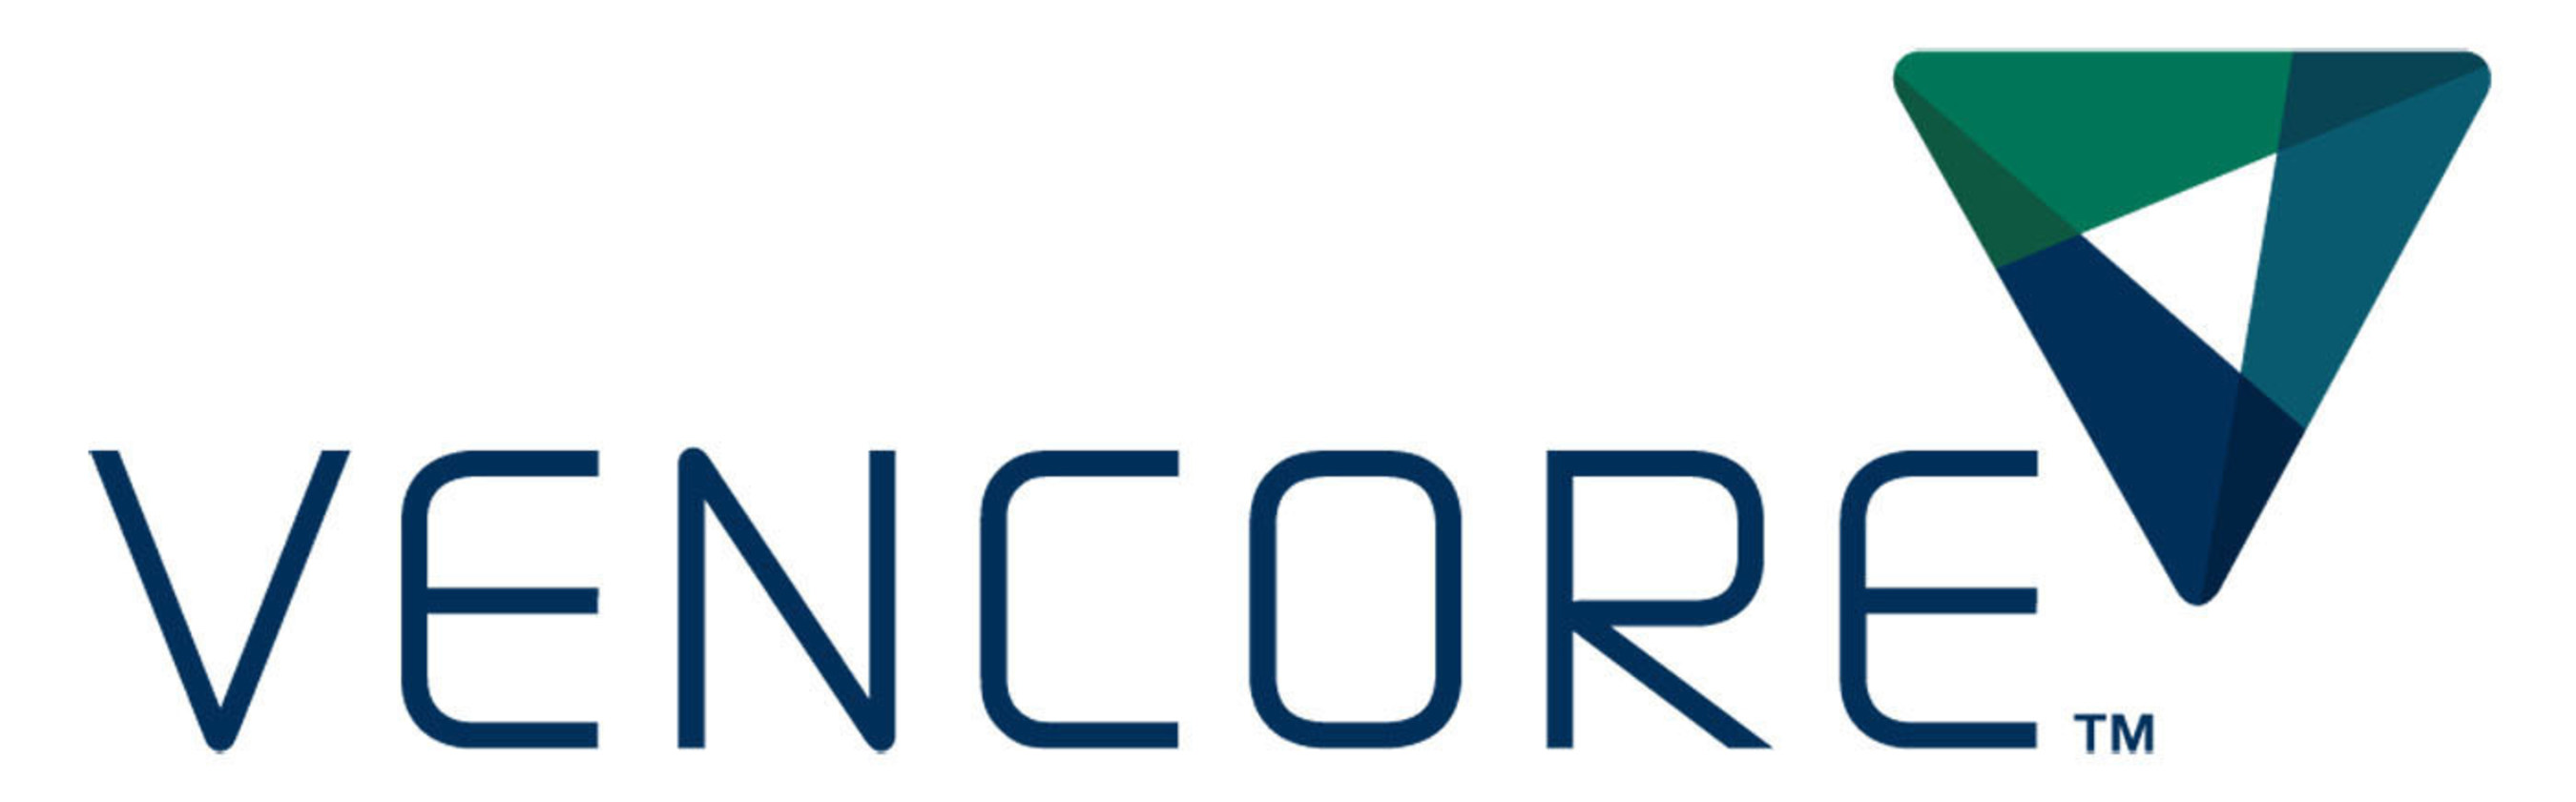 Vencore Awarded IT Services contract valued up to $43 Million